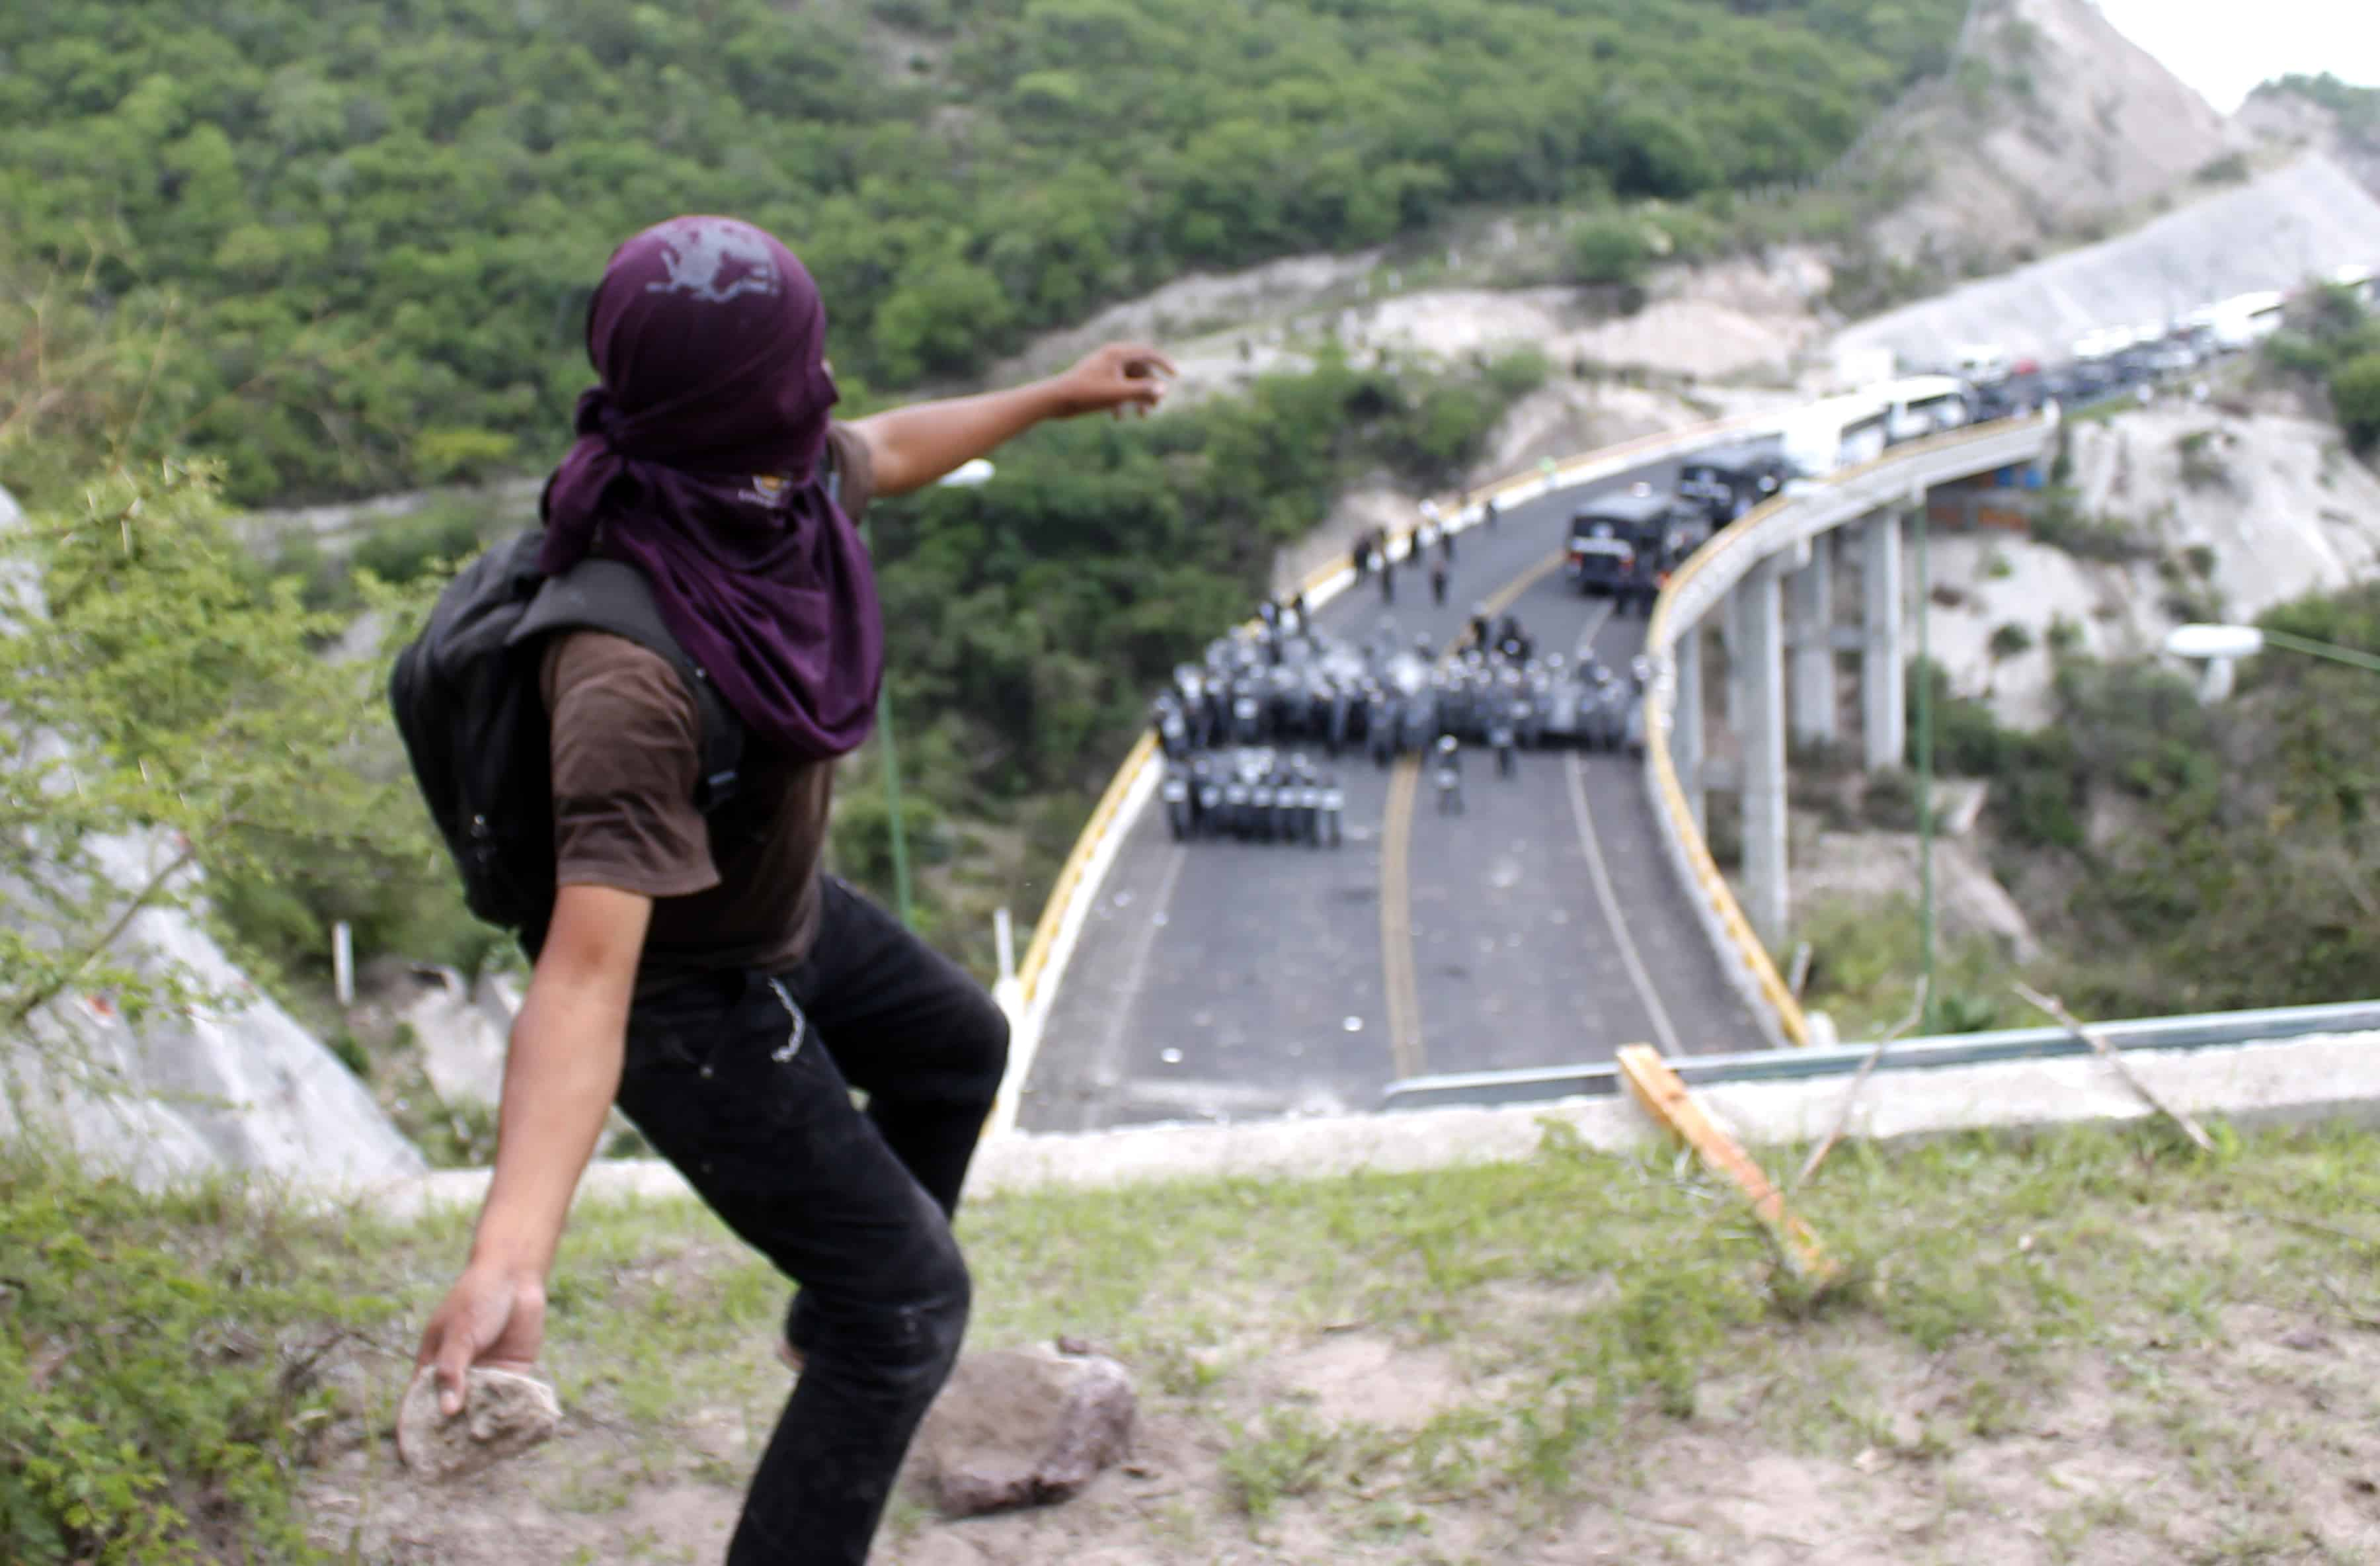 A protester from Ayotzinapa throws stones at the Mexican Federal Police blocking the Chilpancingo-Tixtla highway.